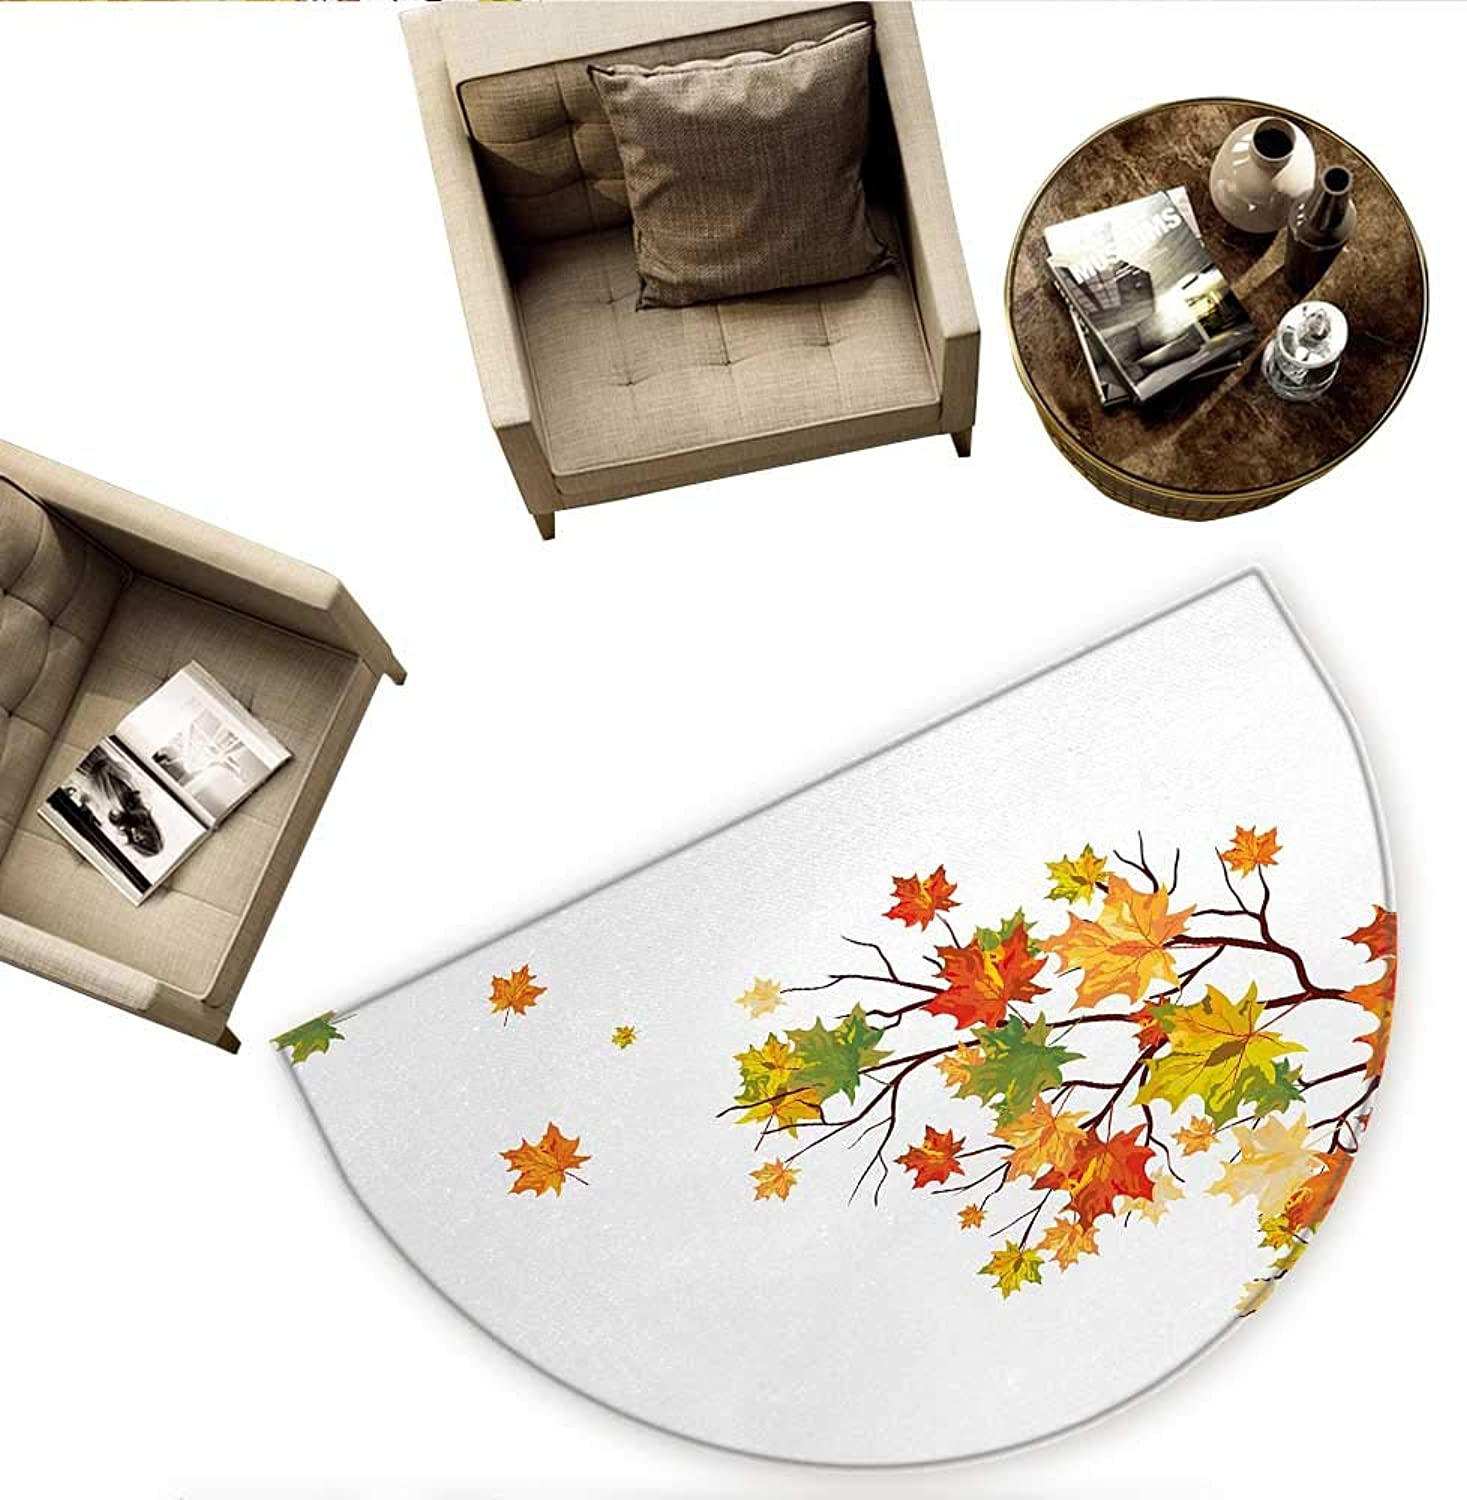 Fall Semicircle Doormat Fall Image with Canadian Maple Leaves Botanical Foliage Nature Warm to Cold Effects Halfmoon doormats H 59  xD 88.6  Yellow orange